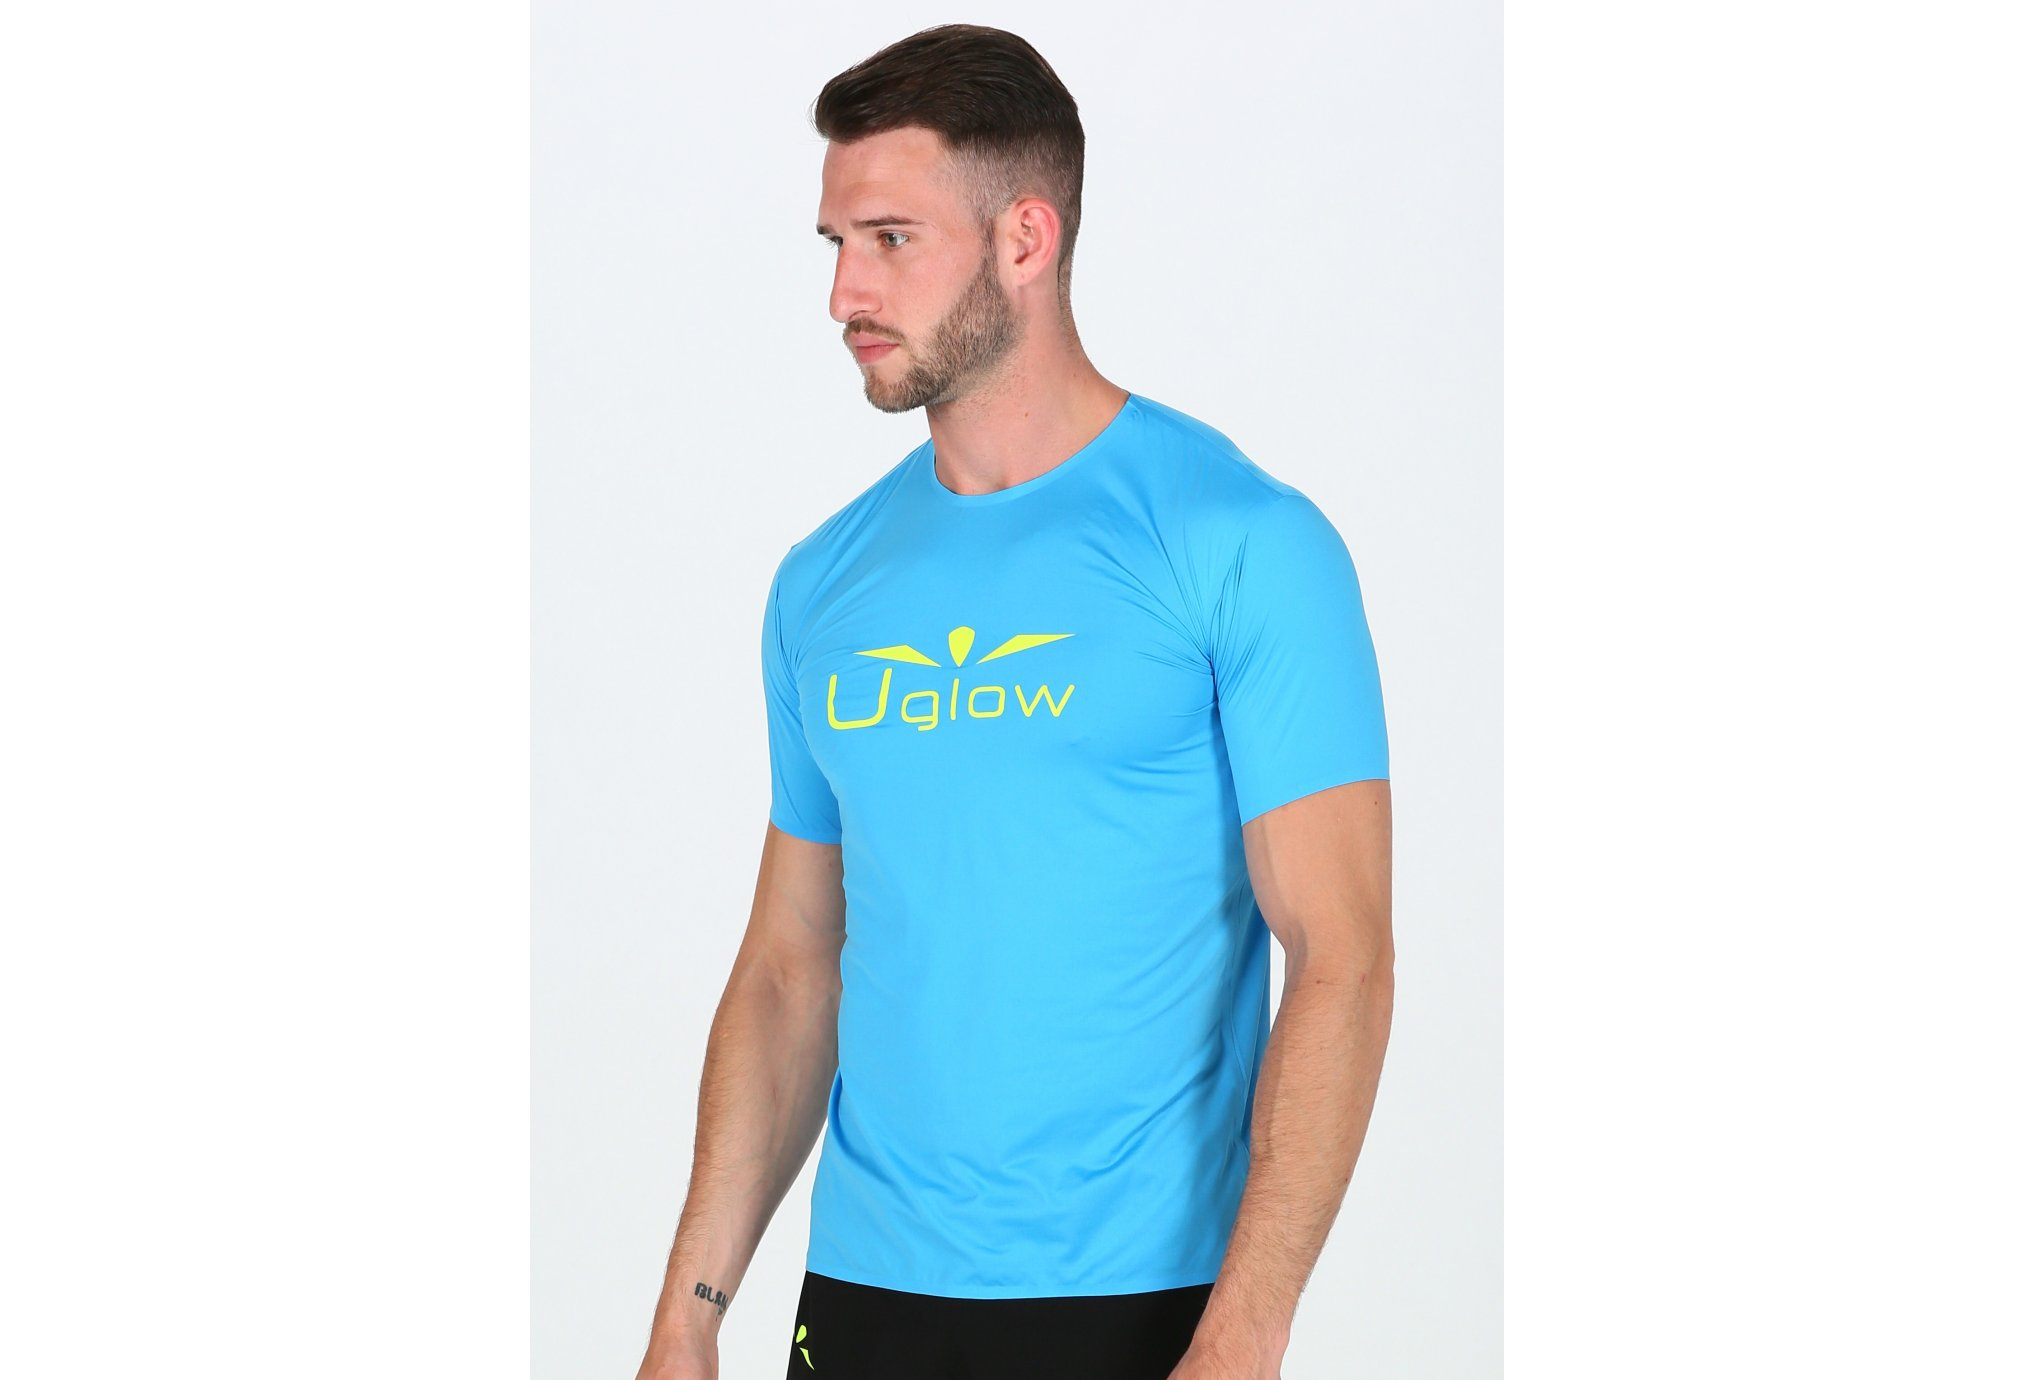 Uglow Tee-Shirt M vêtement running homme